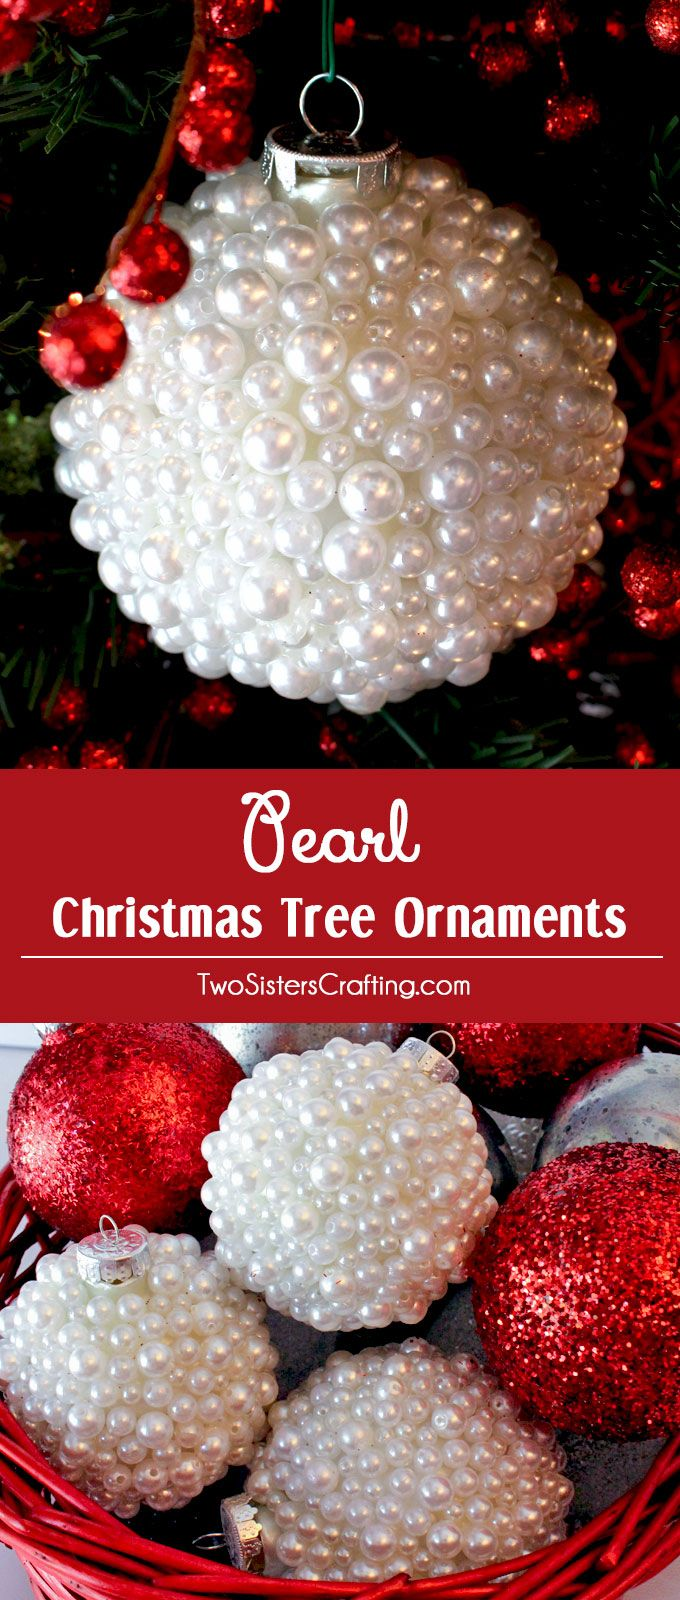 Pearl Christmas Tree Ornaments 281 best holidays